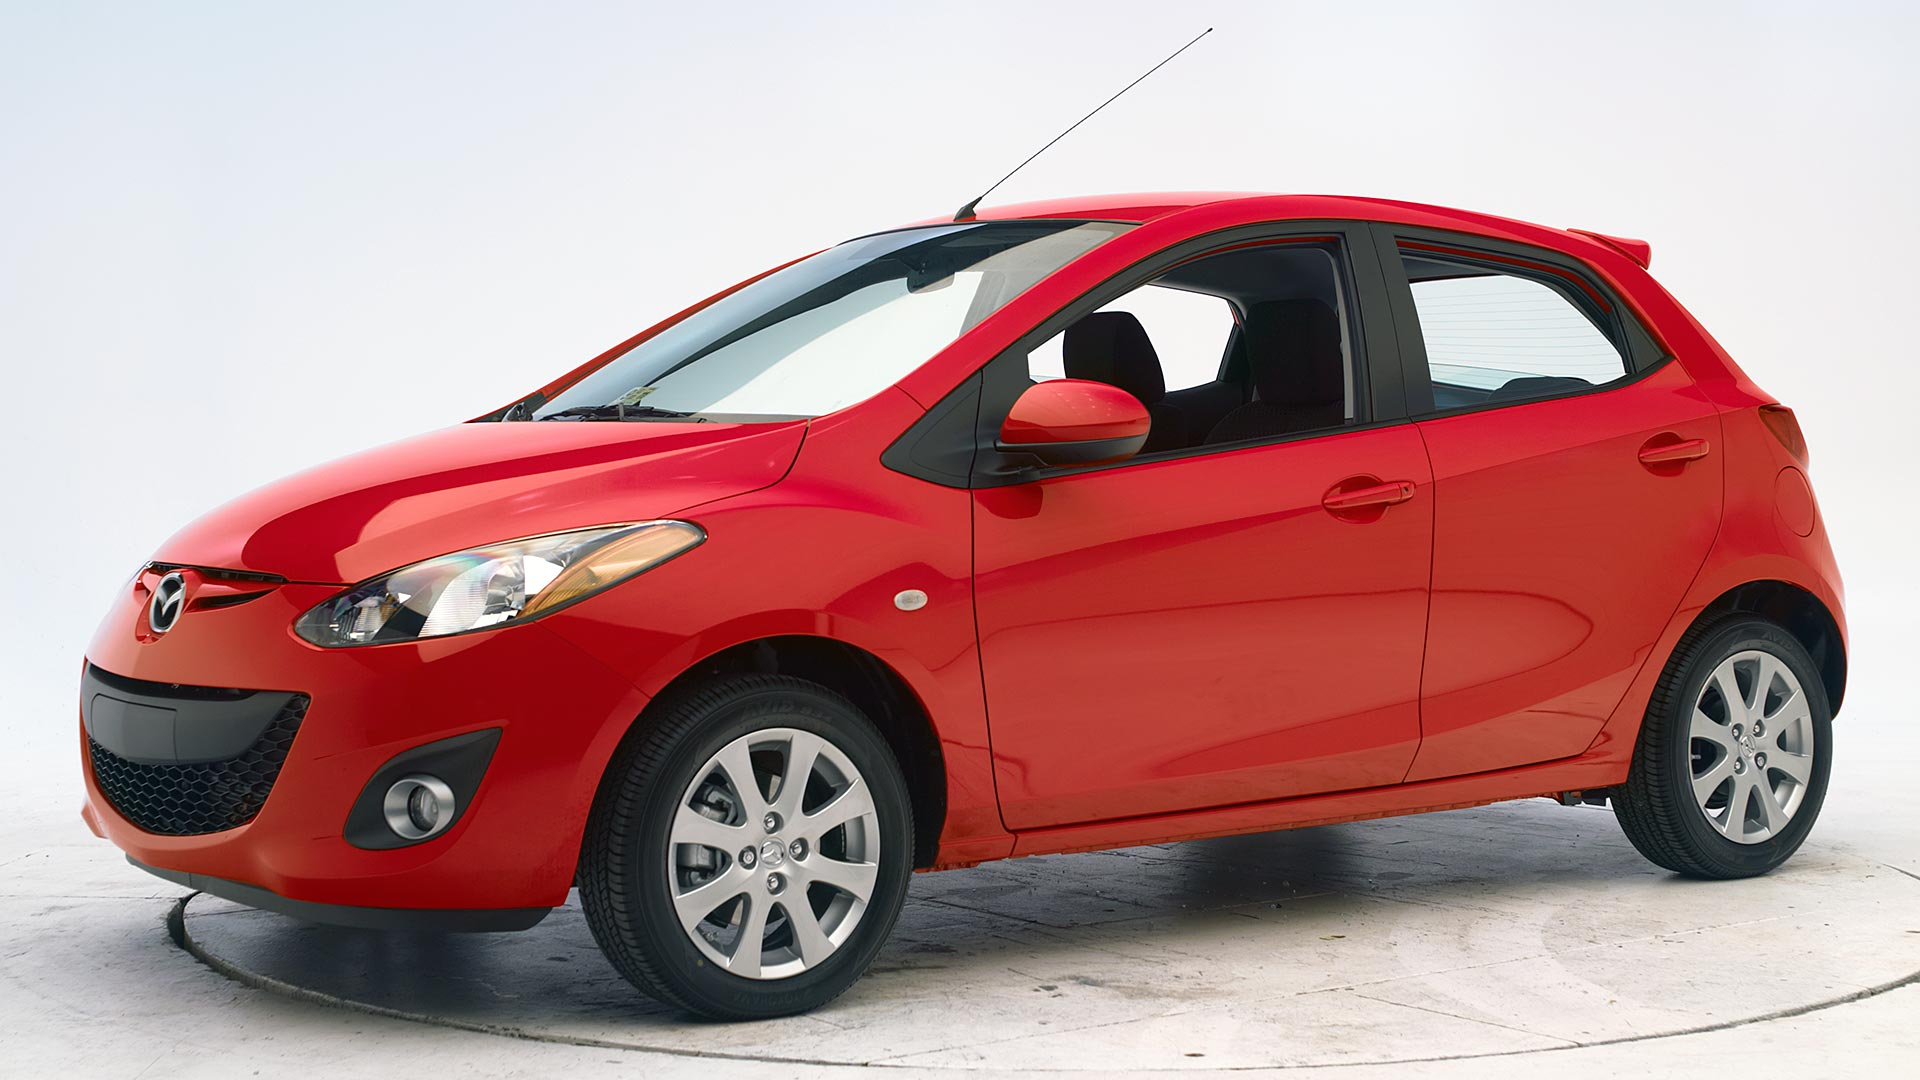 2012 Mazda 2 4-door hatchback